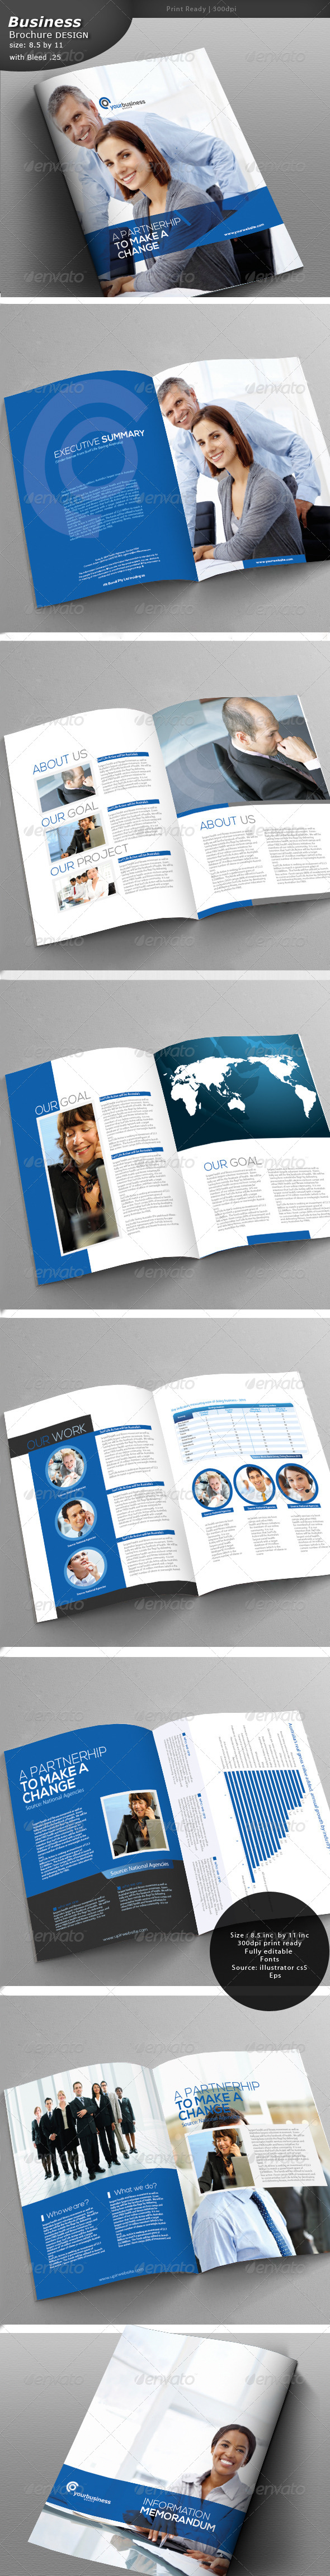 GraphicRiver Business Brochure 5094894